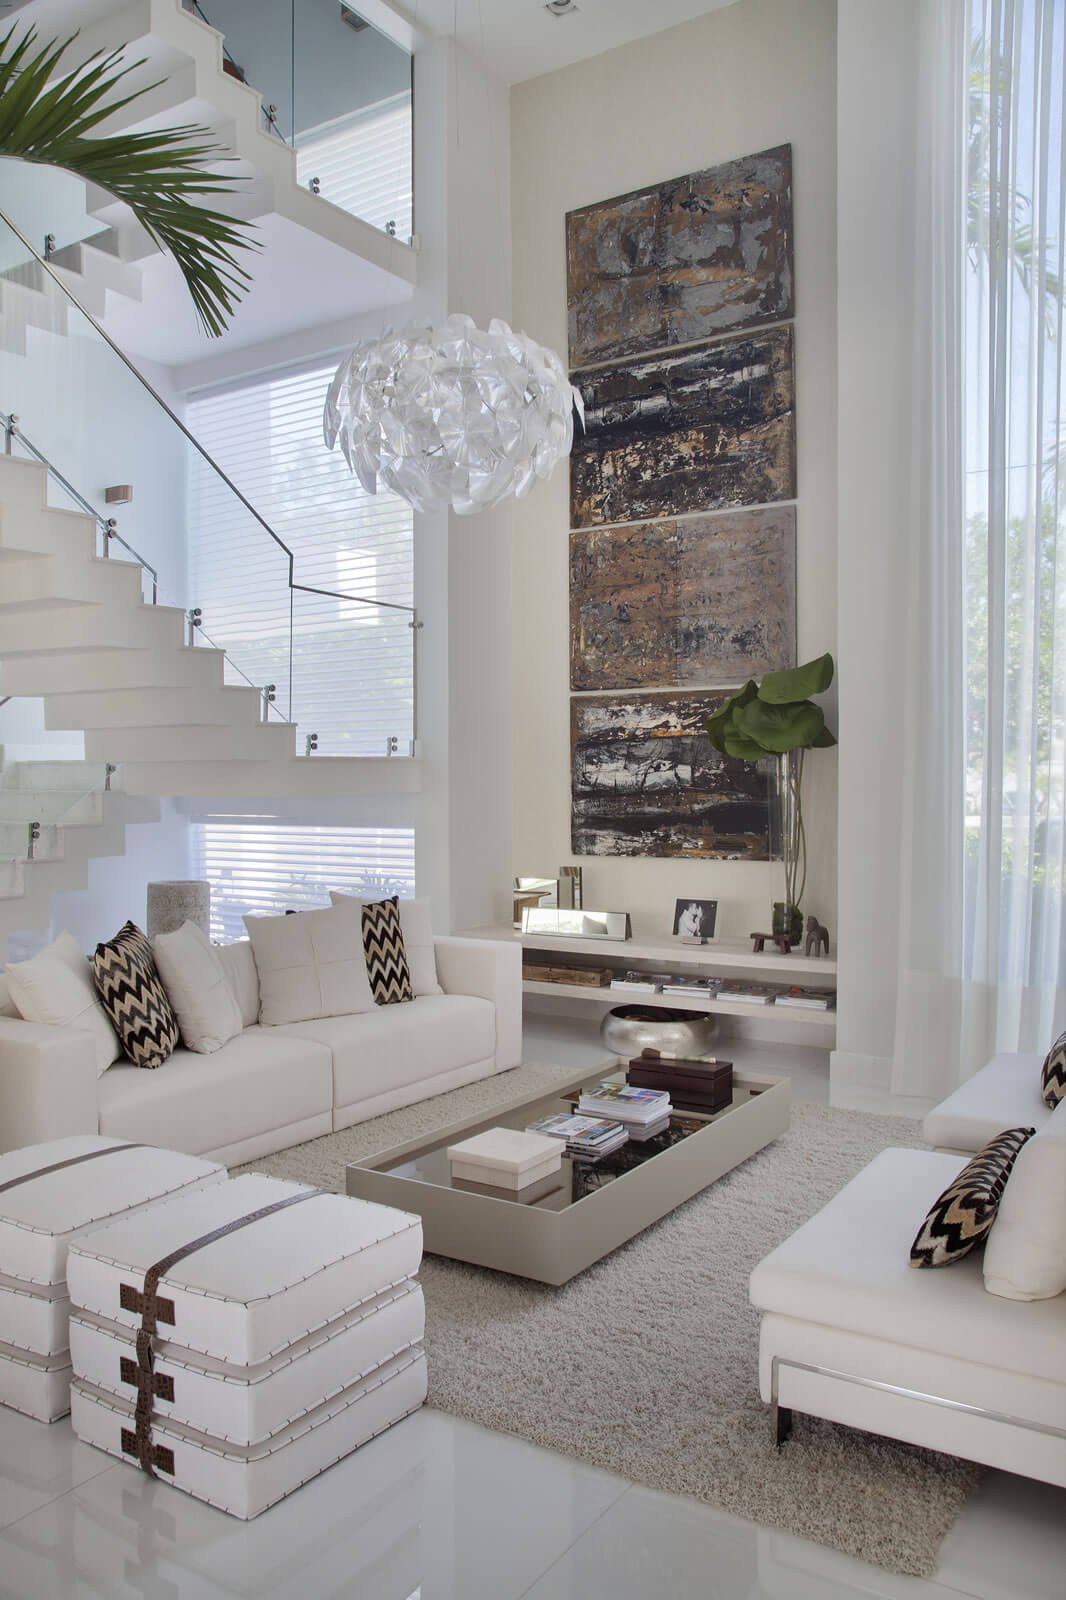 Modern Living Room Ideas 26 Best Modern Living Room Decorating Ideas and Designs